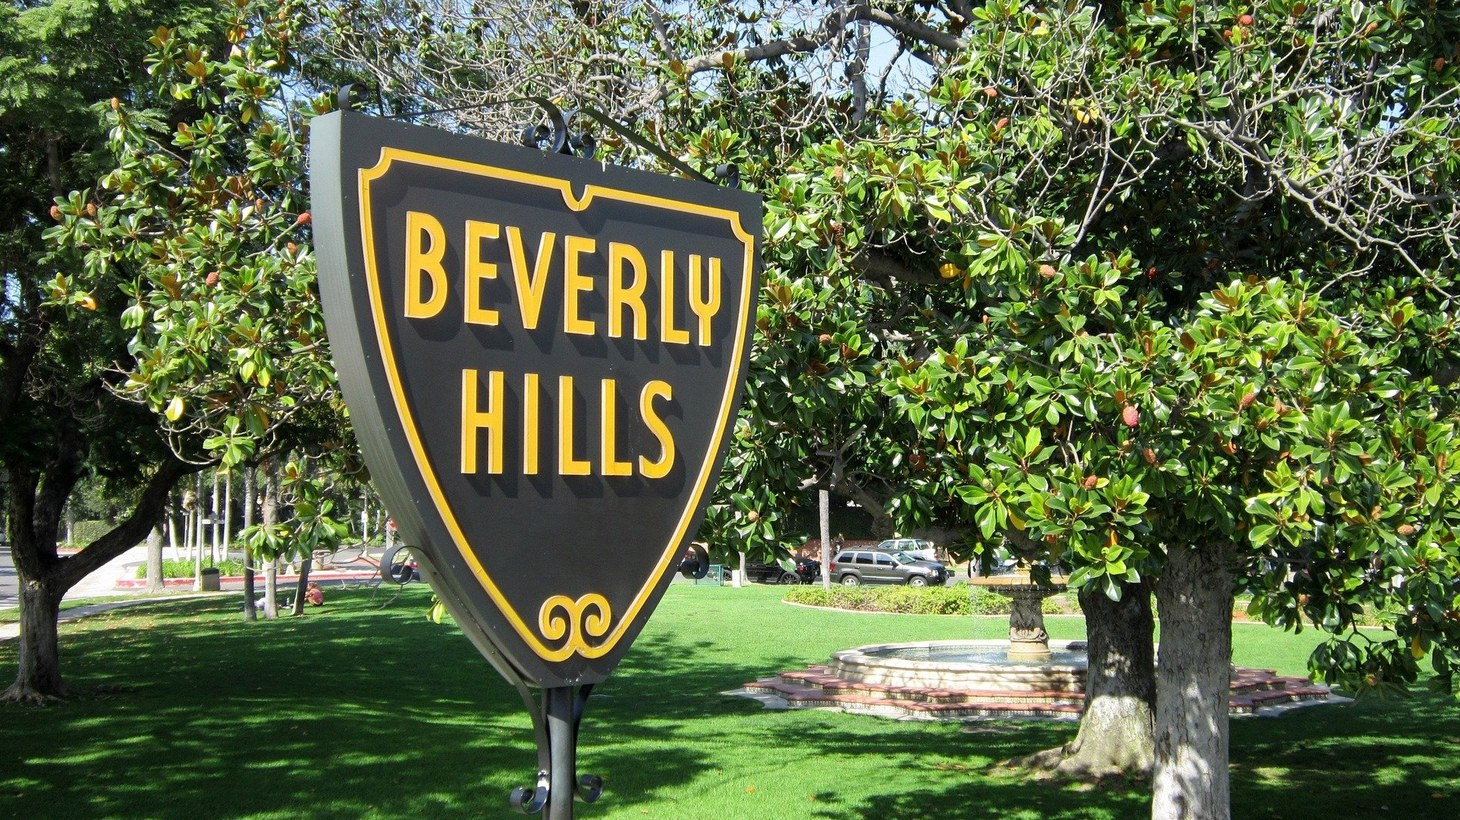 In Beverly Hills last Friday, a man's watch was stolen right off his wrist as he sat at an outdoor restaurant.